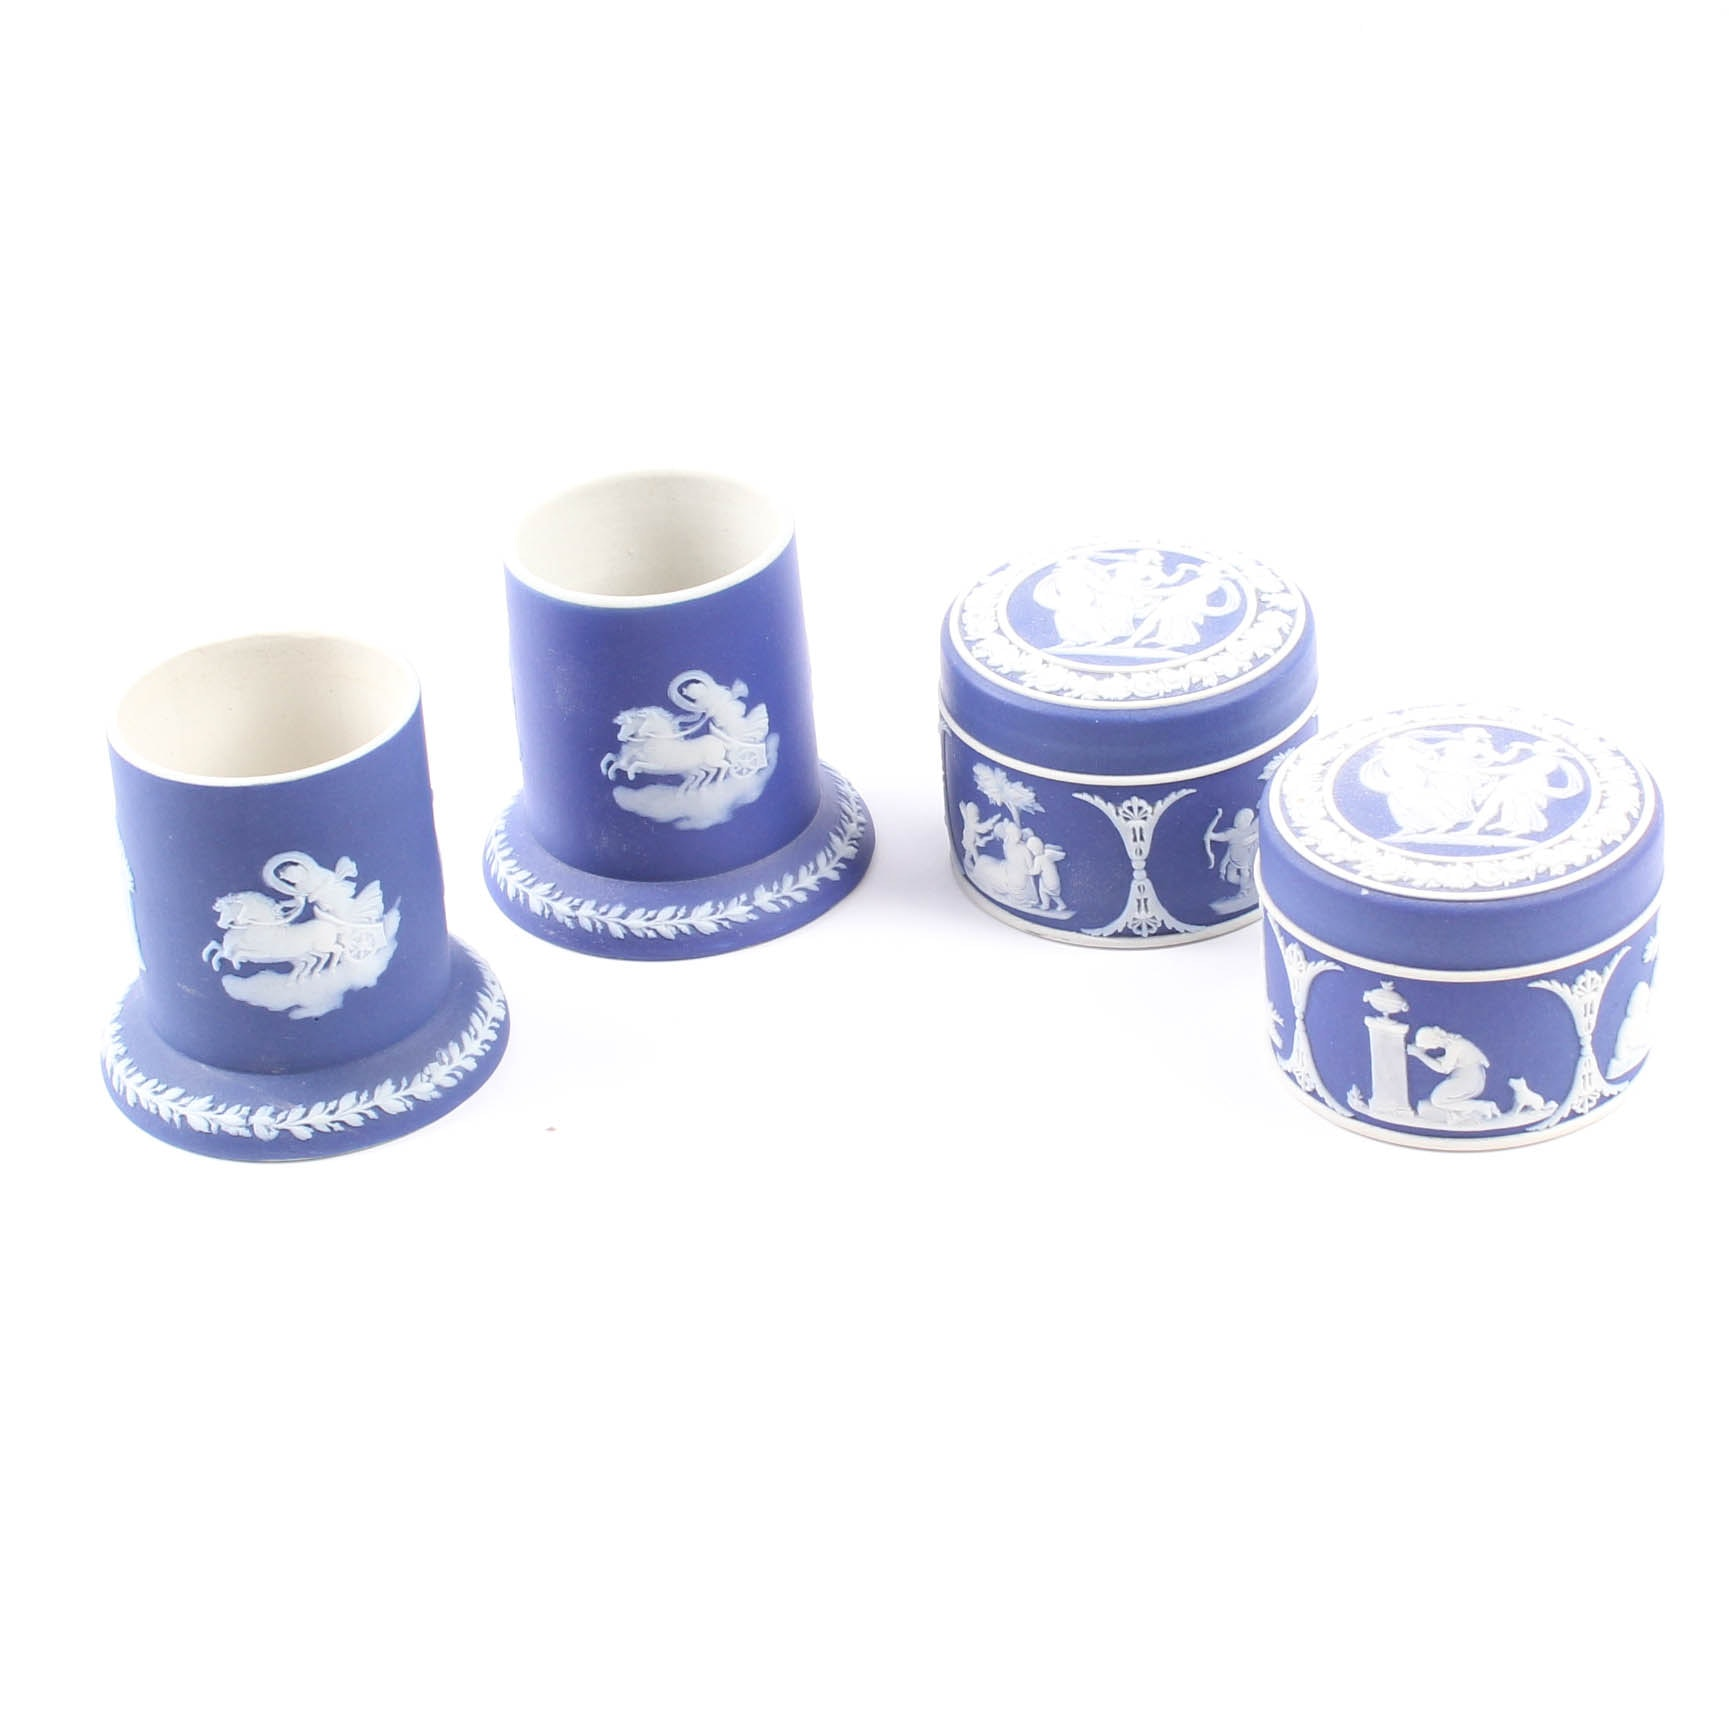 Wedgwood Jasperware Trinket Boxes and Candle Holders